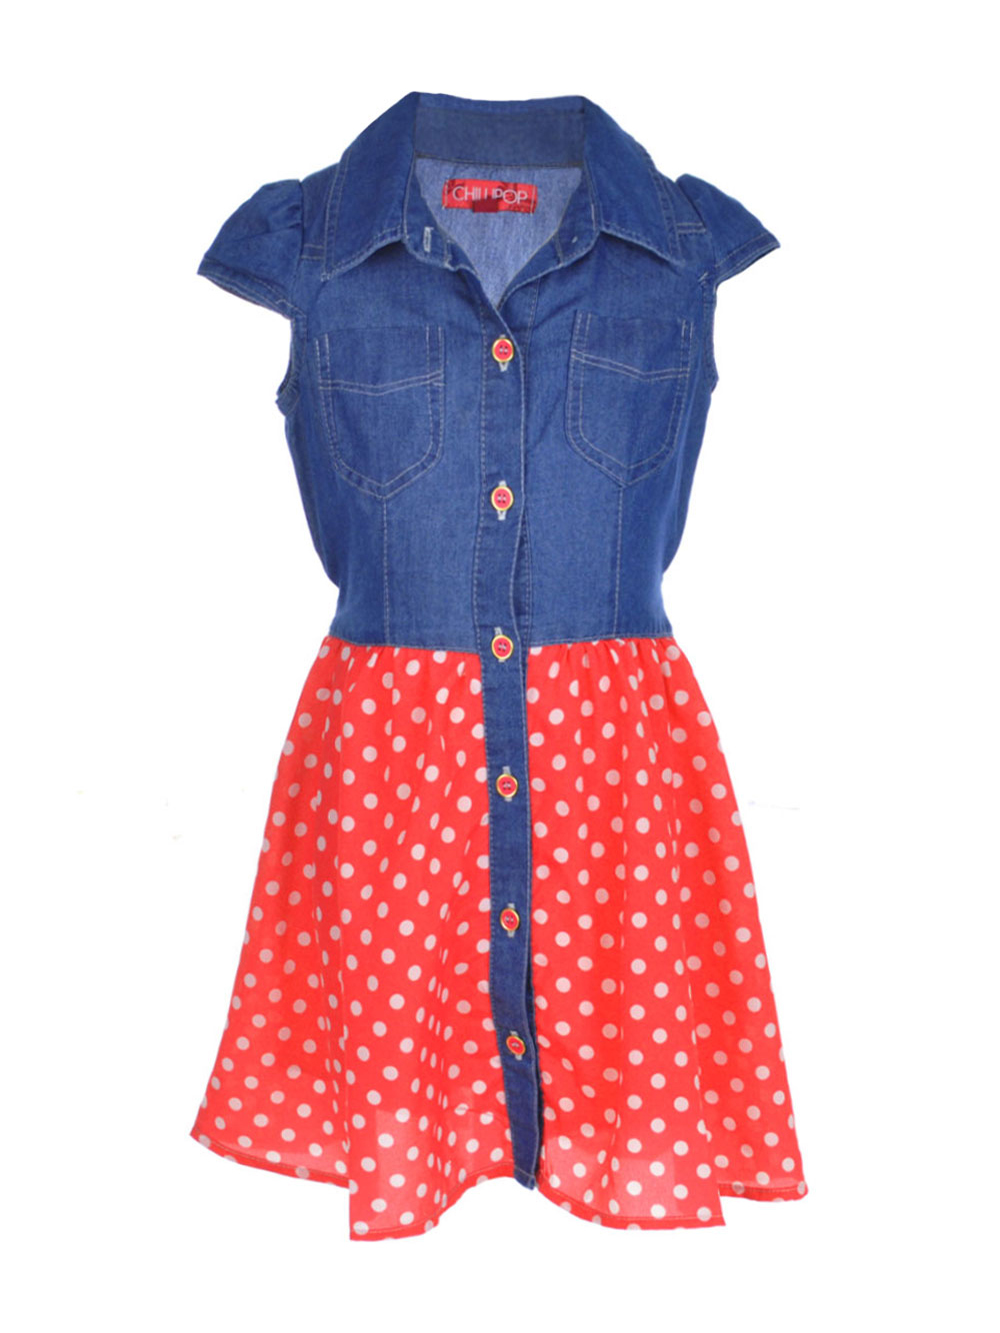 Image of Chillipop Little Girls Dots Down Dress Sizes 4  6X  denim red 4